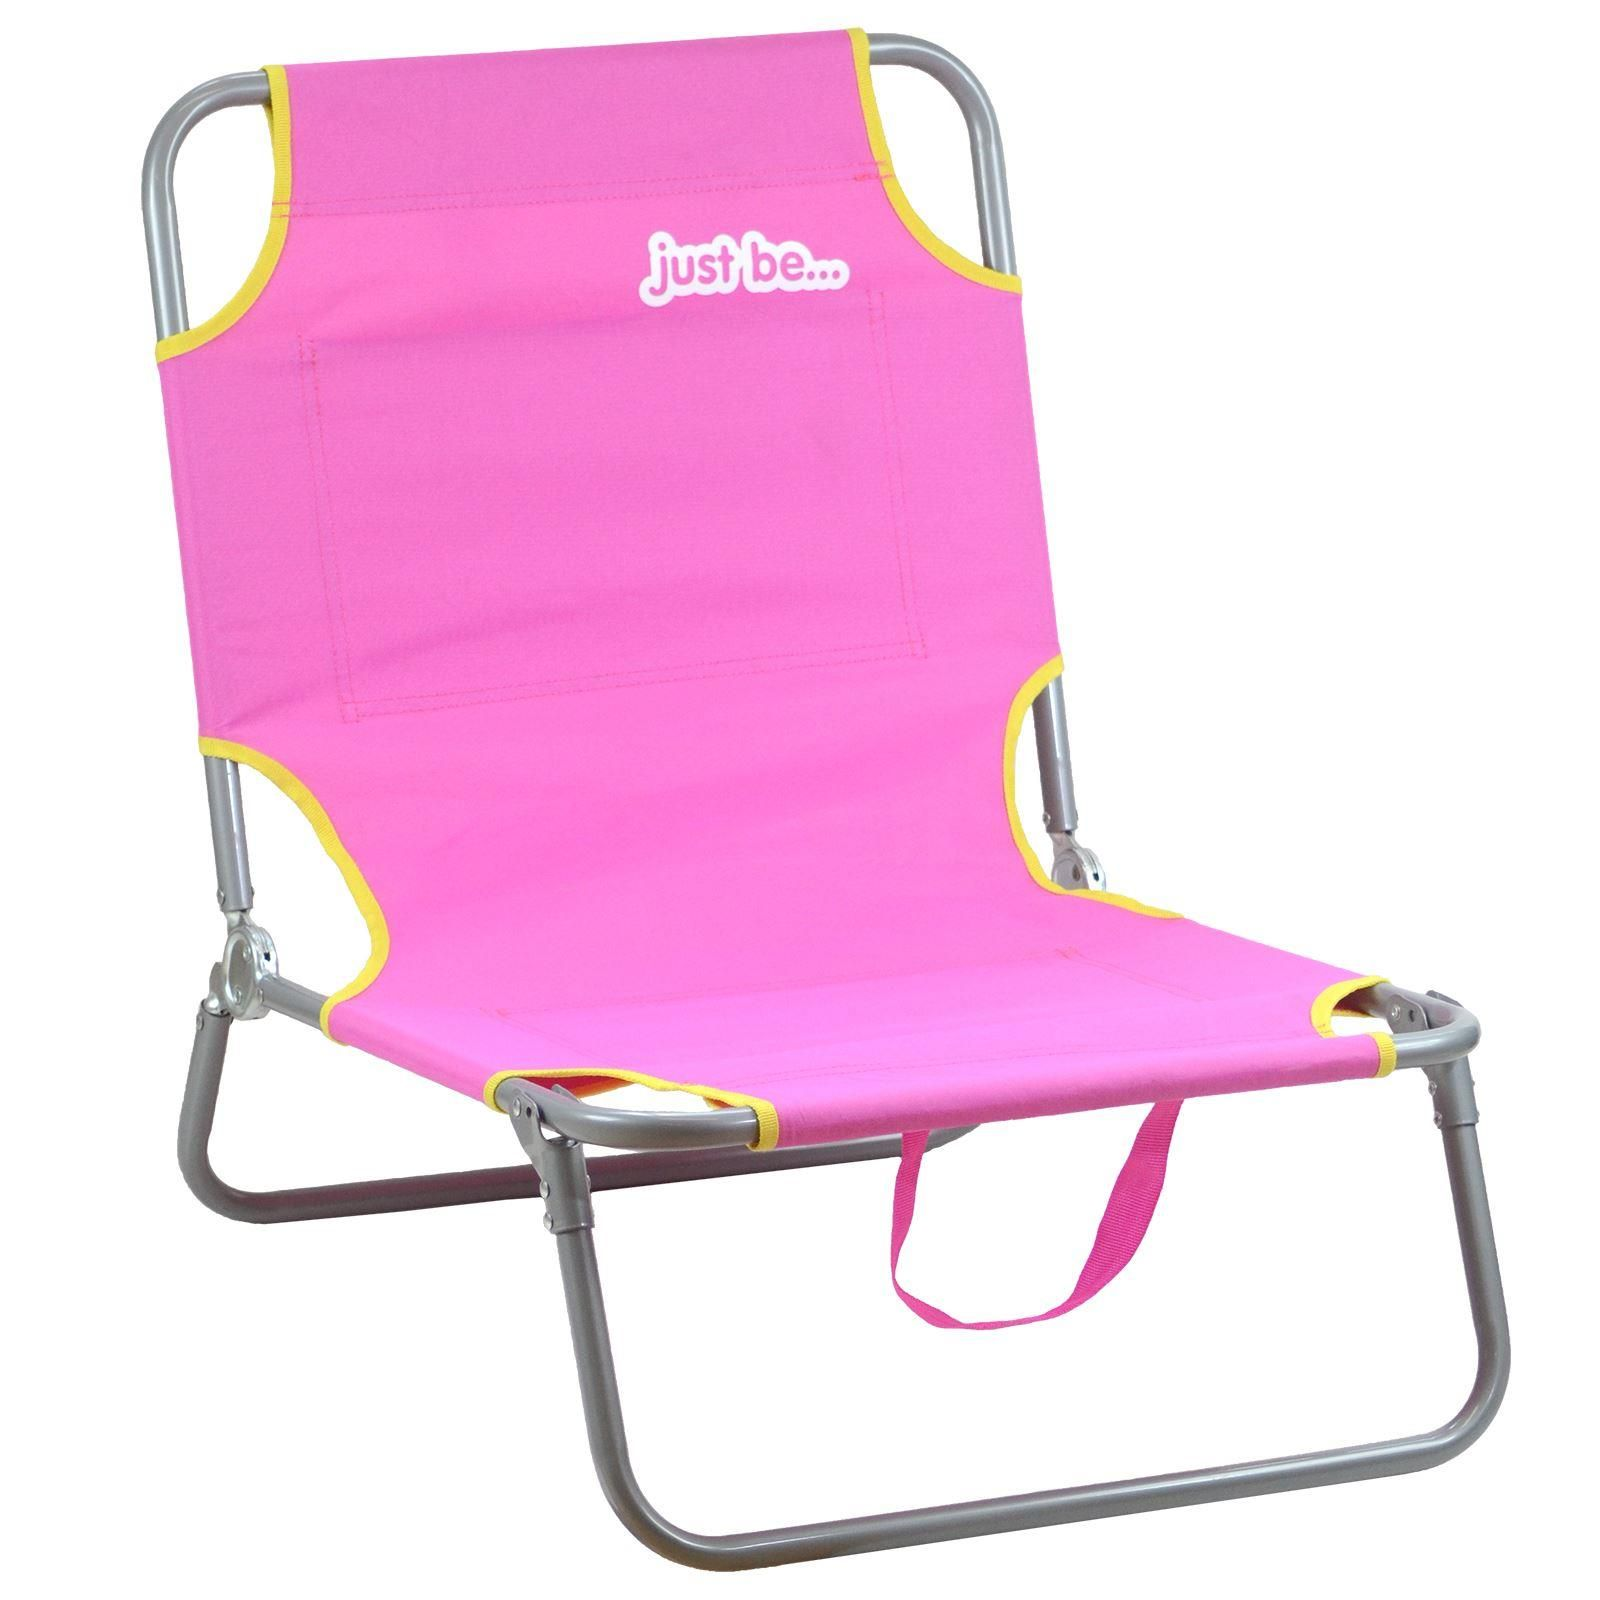 Beach & Garden Sun Chair Lounger  - Pink